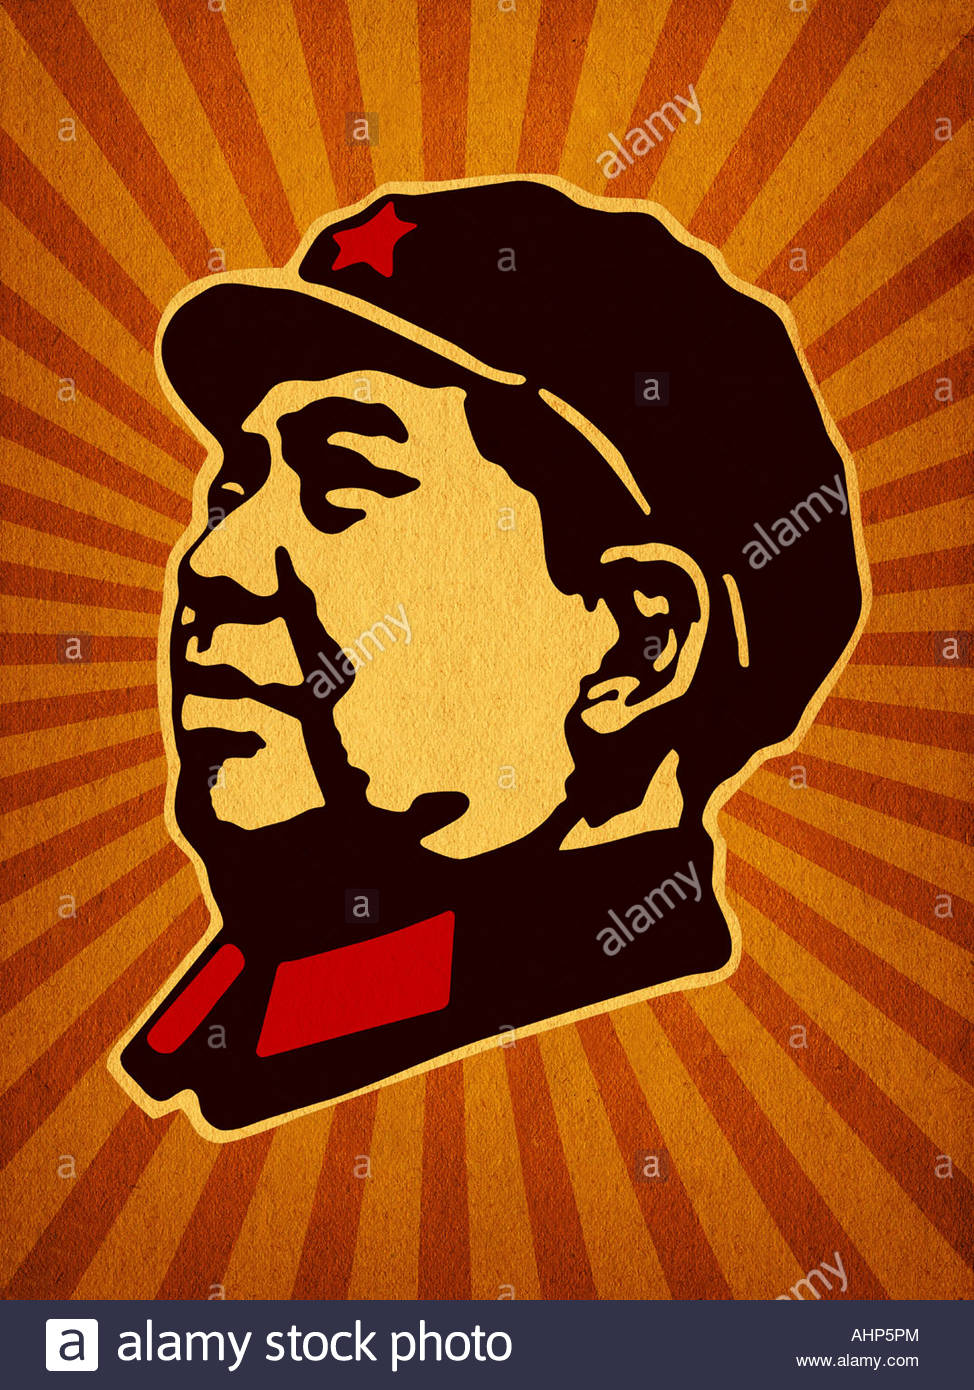 Chinese Communist Revolutionary Leader Stock Photos & Chinese.